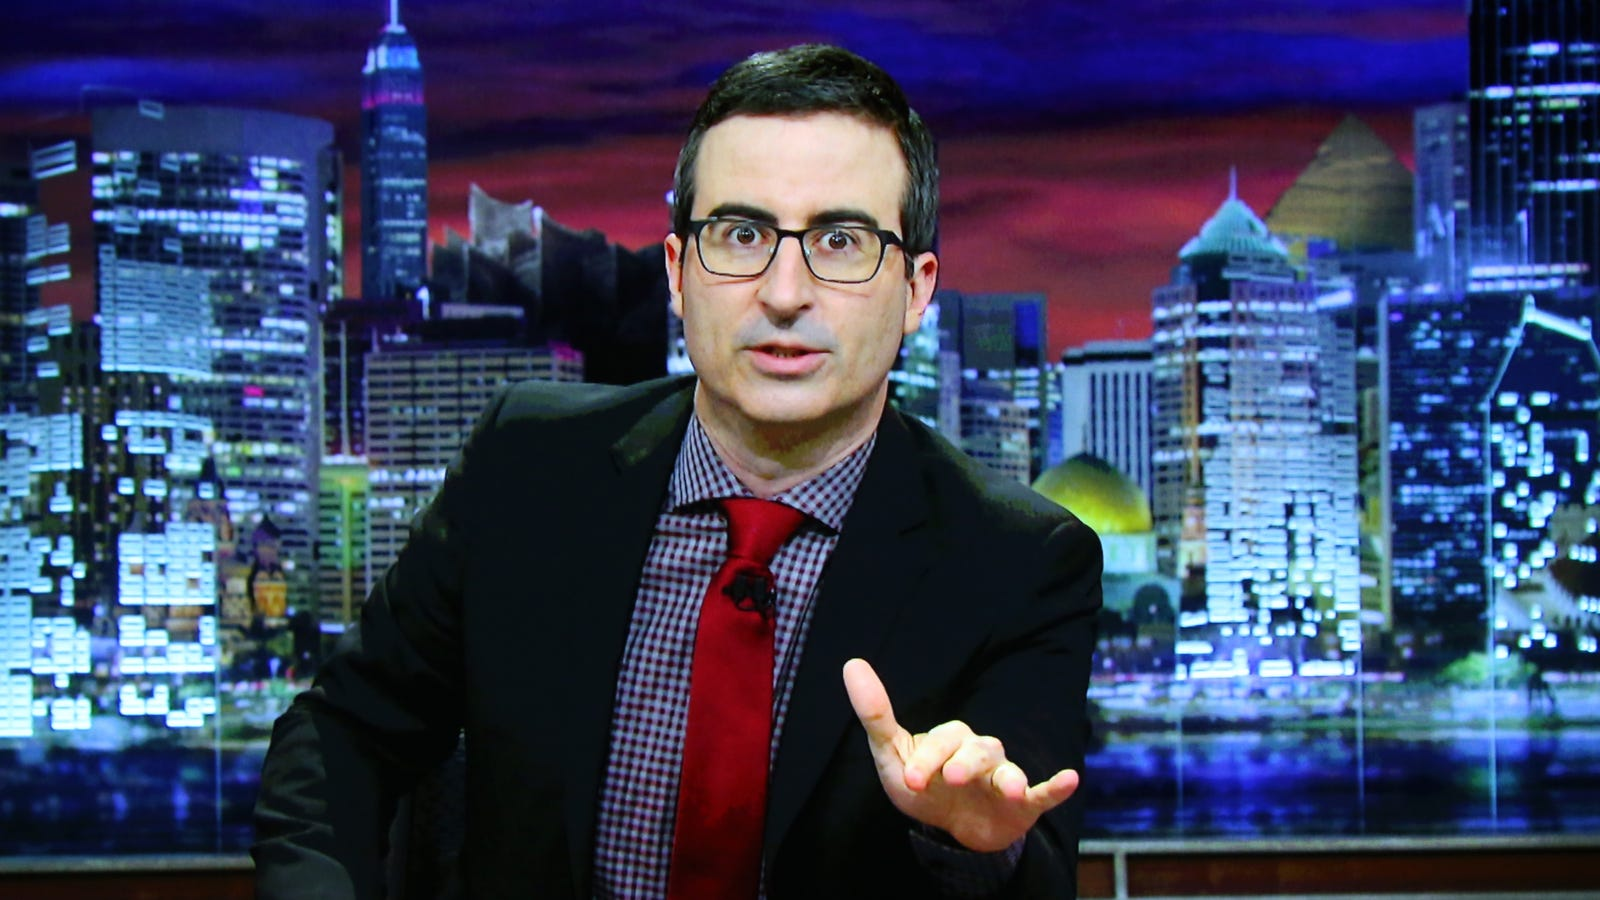 Judge tosses out that defamation lawsuit against HBO and John Oliver